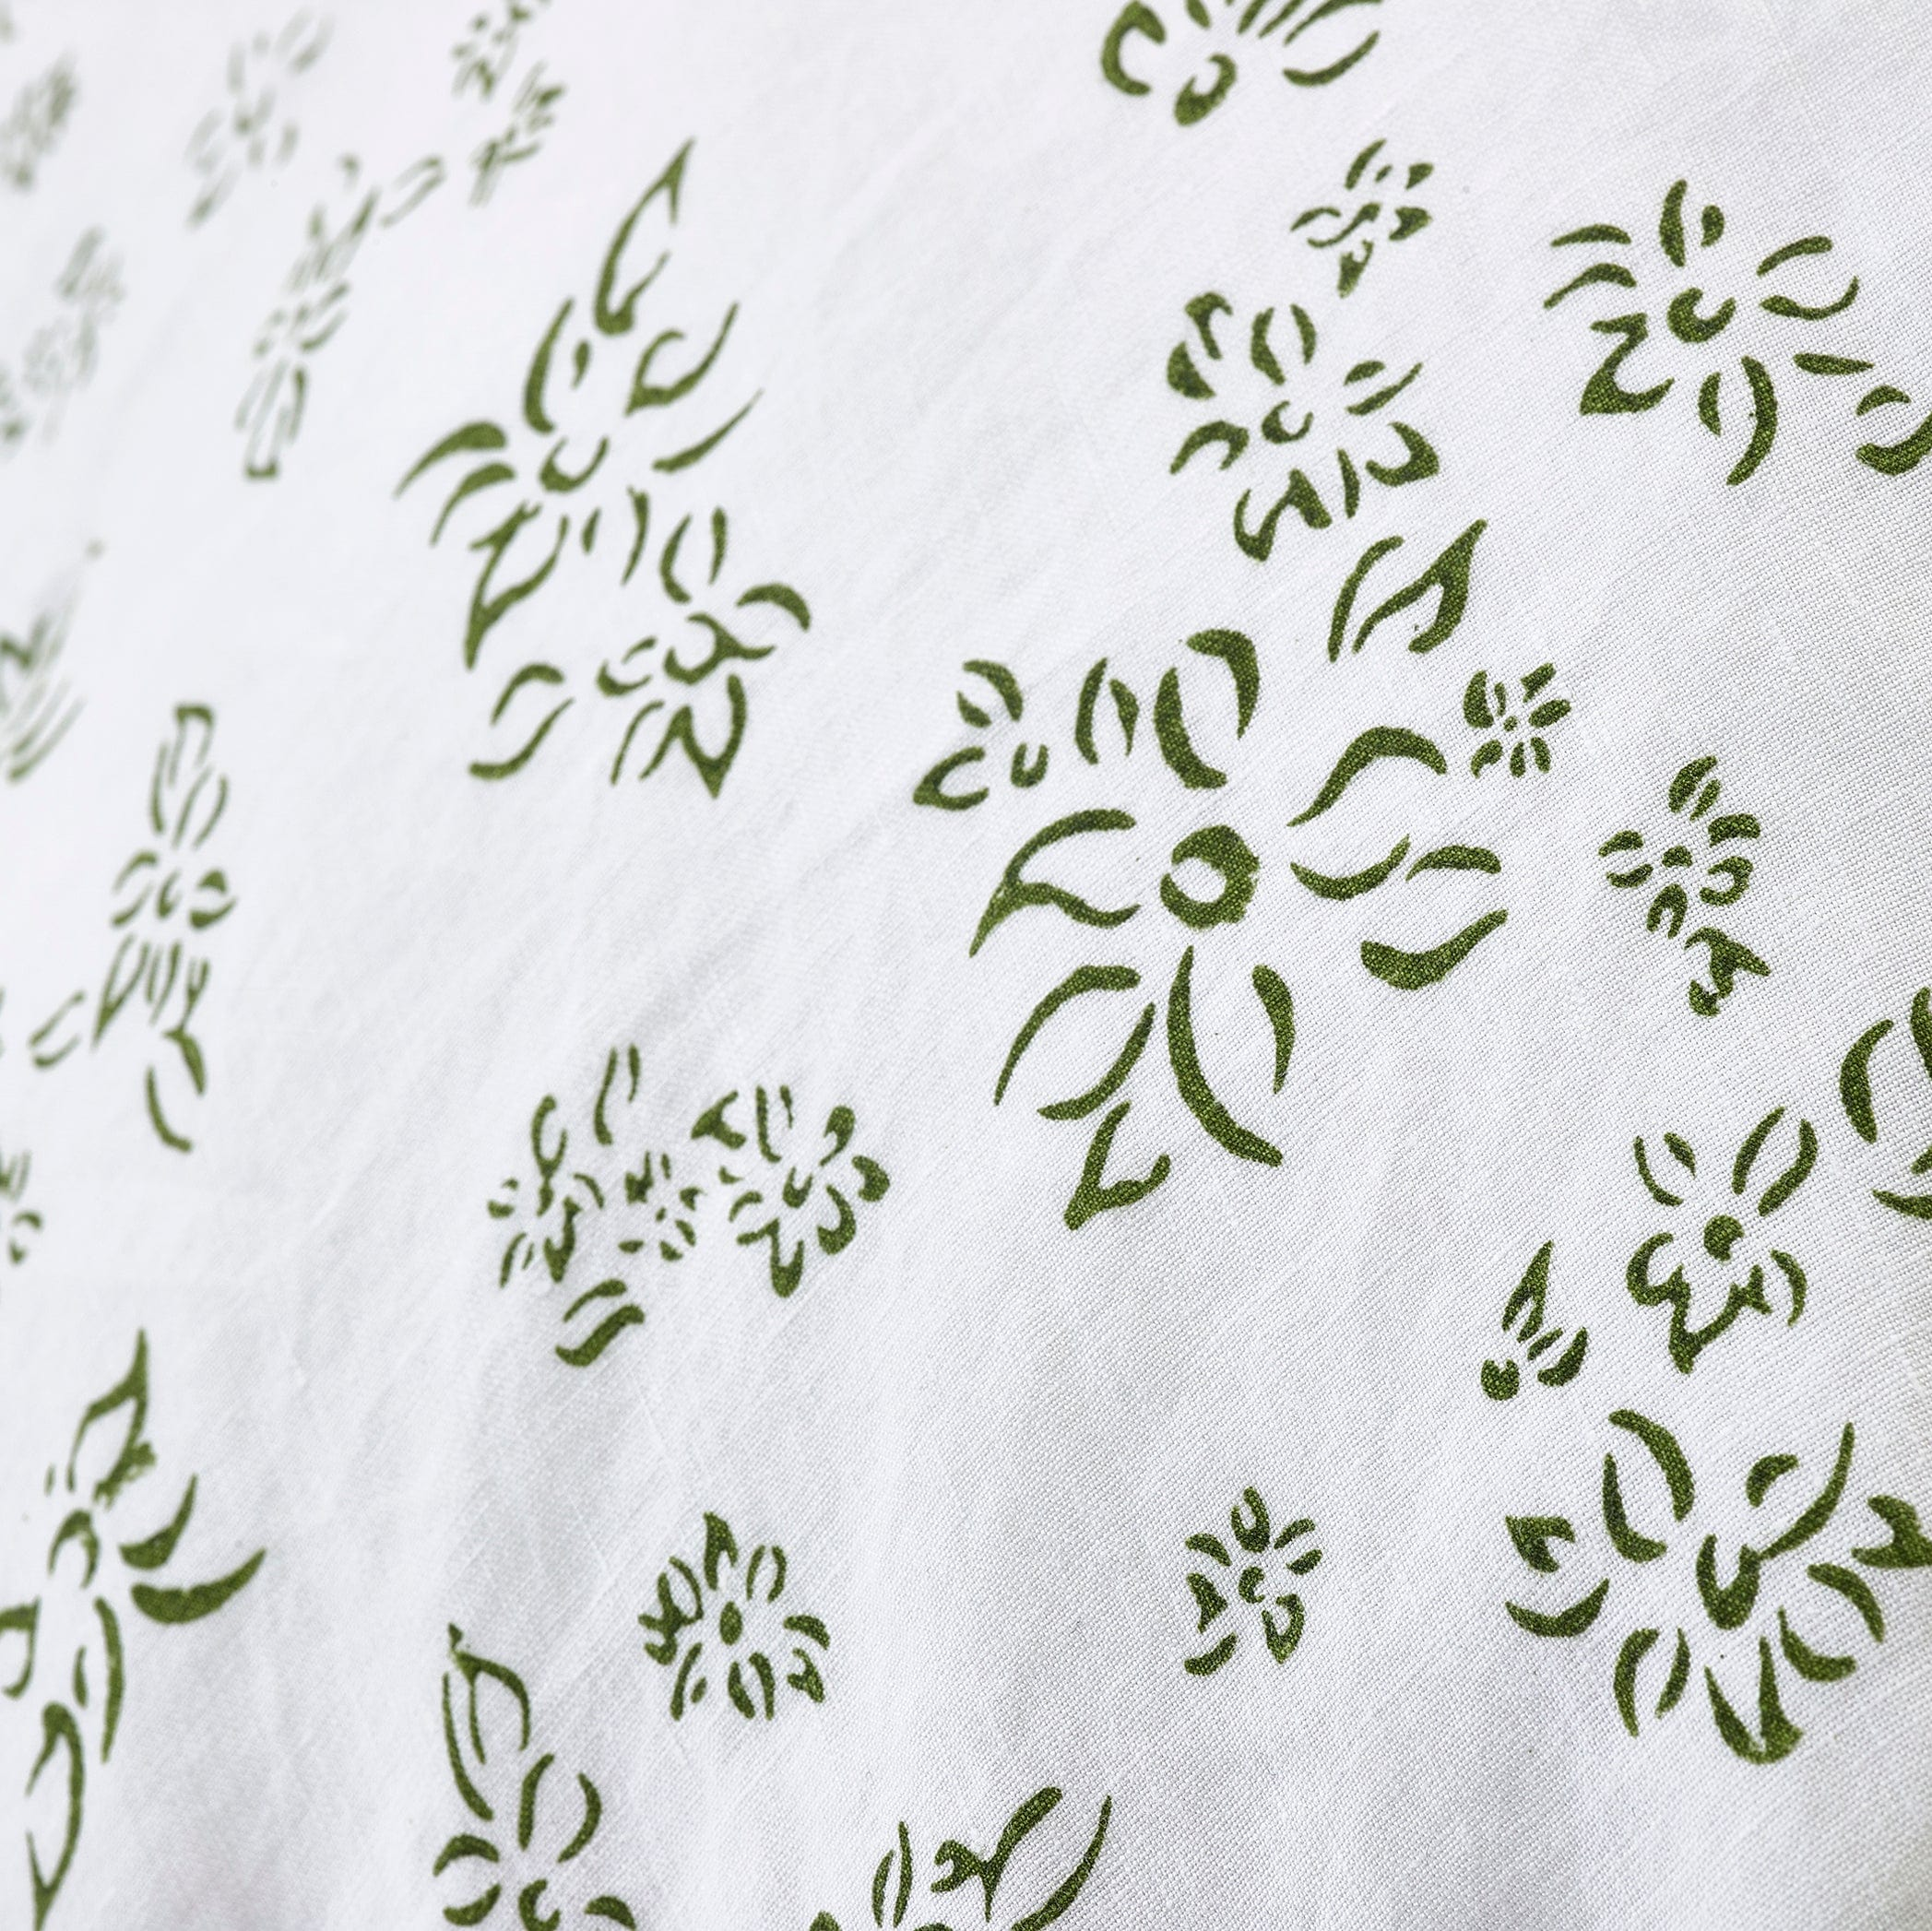 """Bernadette's Hand Stamped Falling Flower"" Linen Bed Set in Avocado Green, Super King"